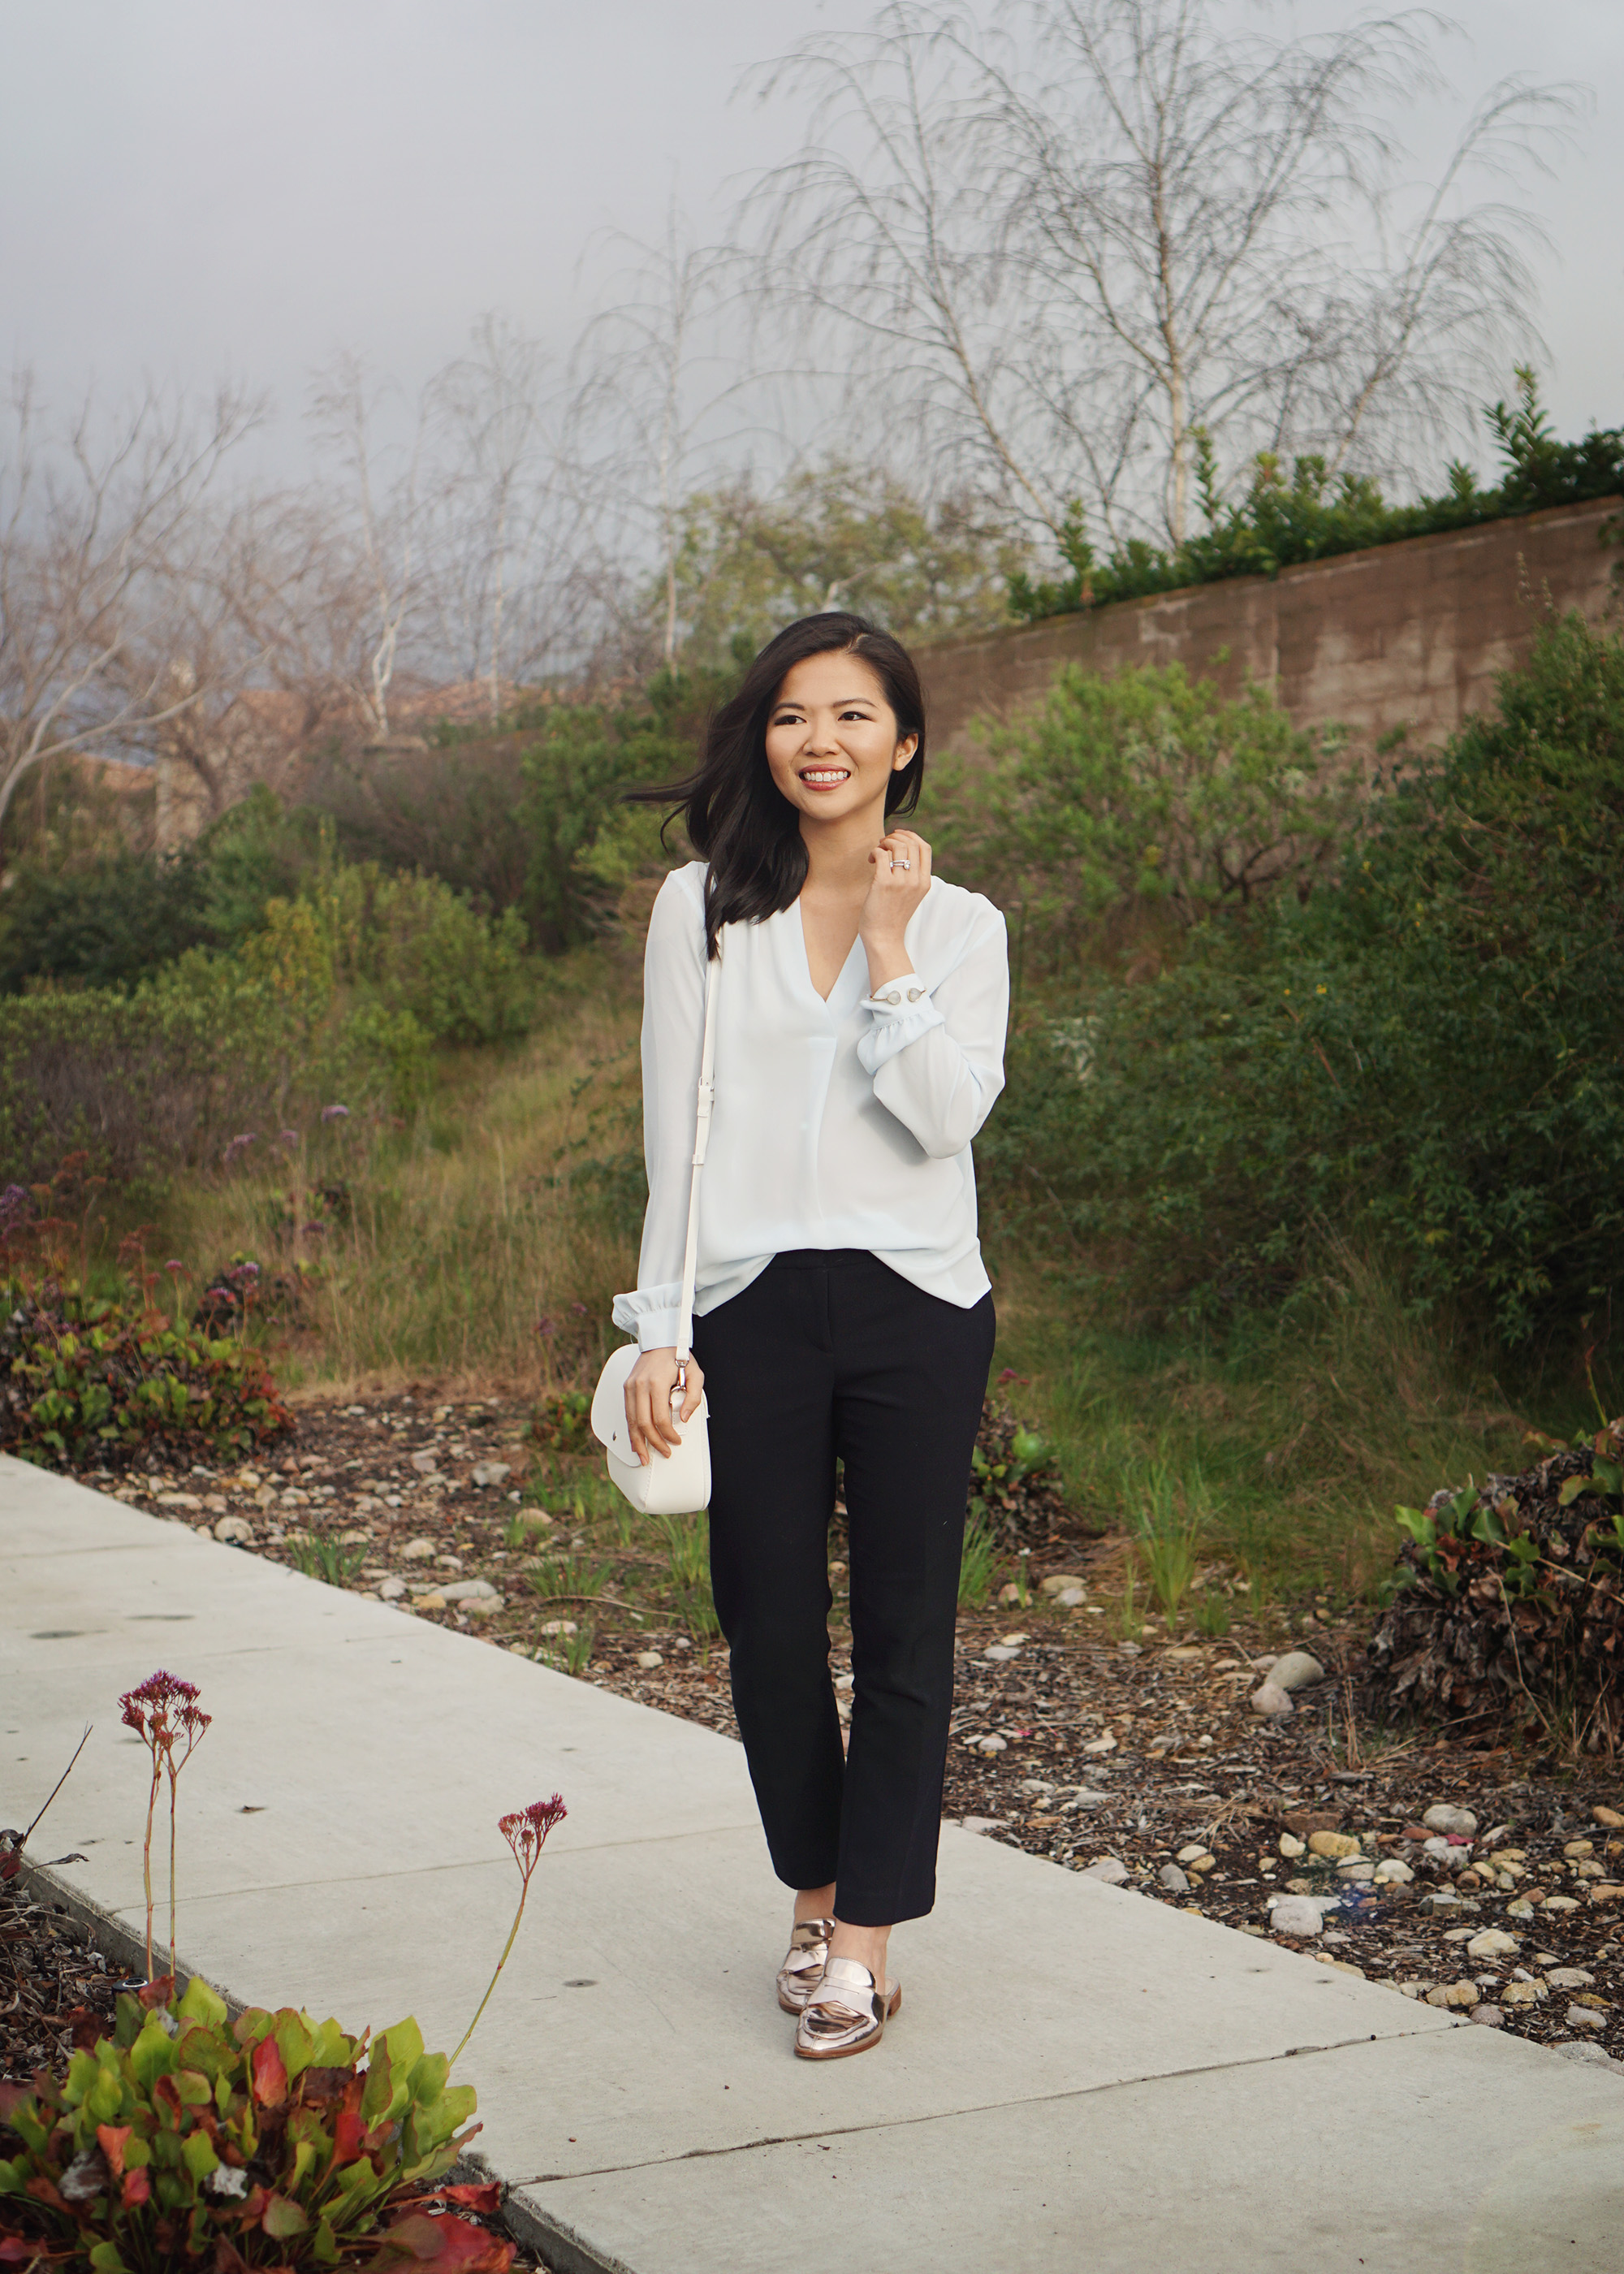 Skirt The Rules / Light Blue Blouse & Navy Slacks